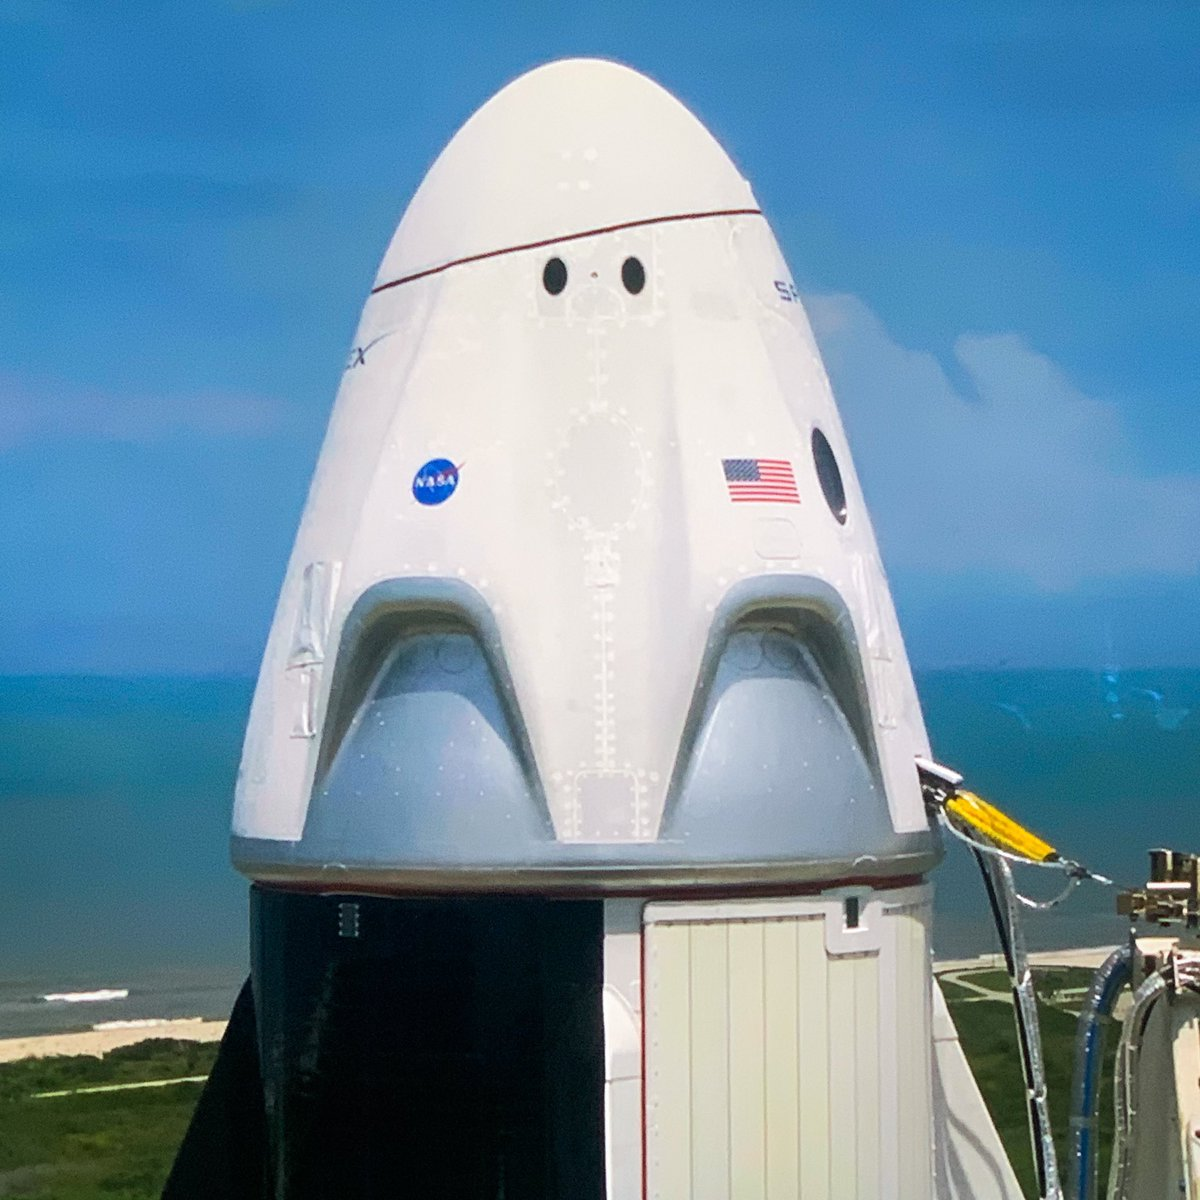 Is it me or the dragon looks like a pac-man ghost???   #LaunchAmerica #SpaceX #space #pacman pic.twitter.com/vqhzVs5C3J